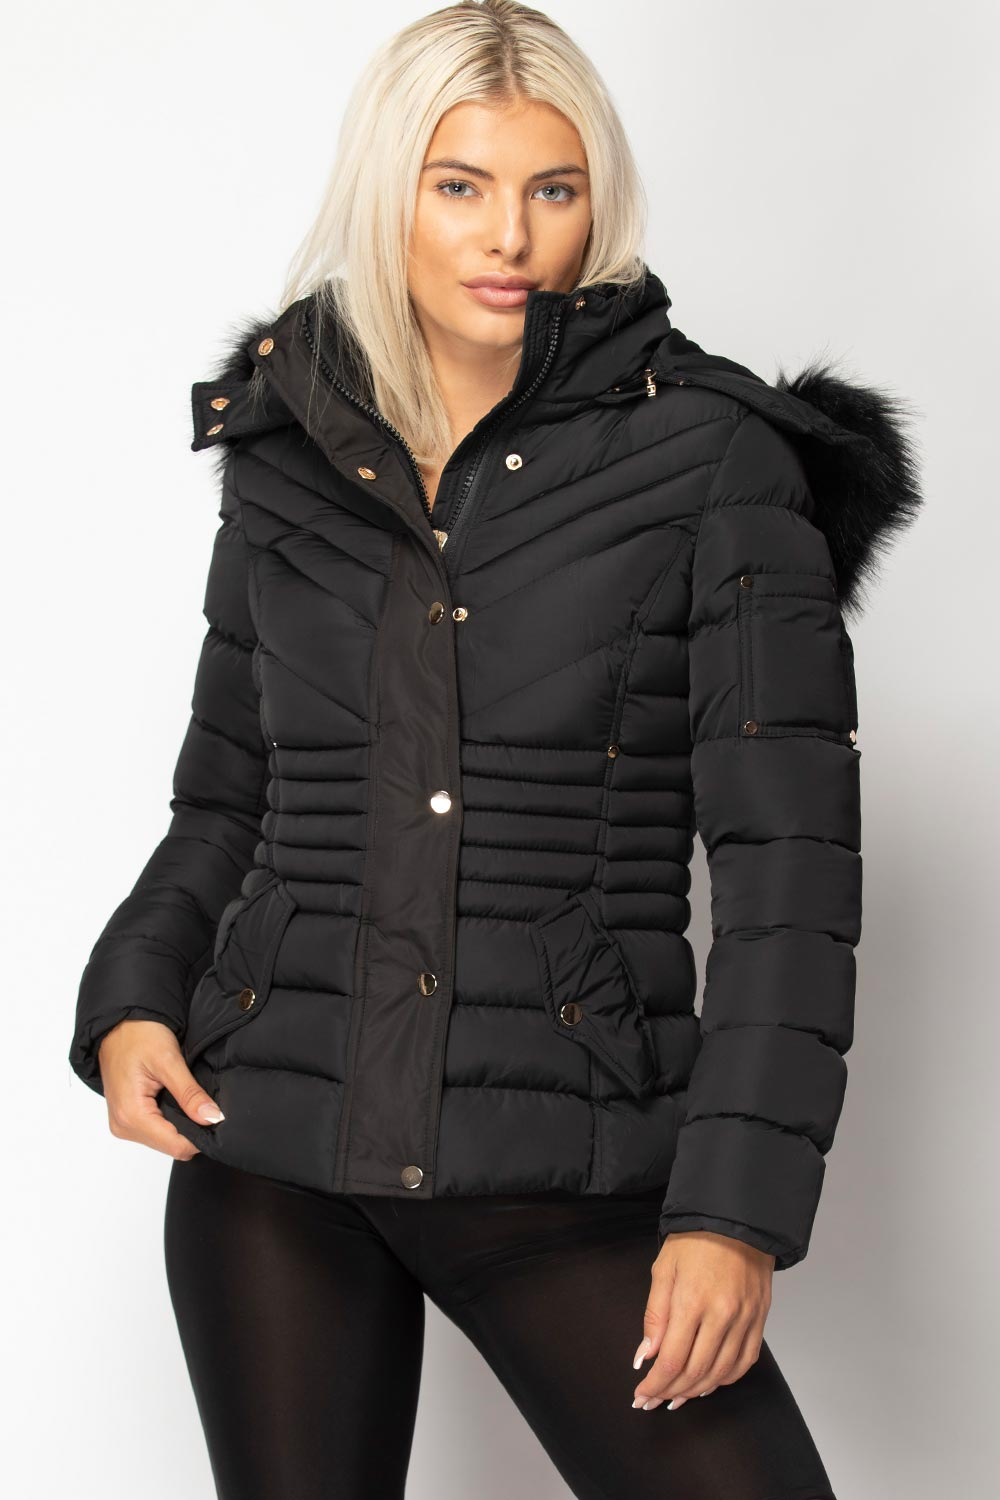 black puffer coat with fur hood uk womens